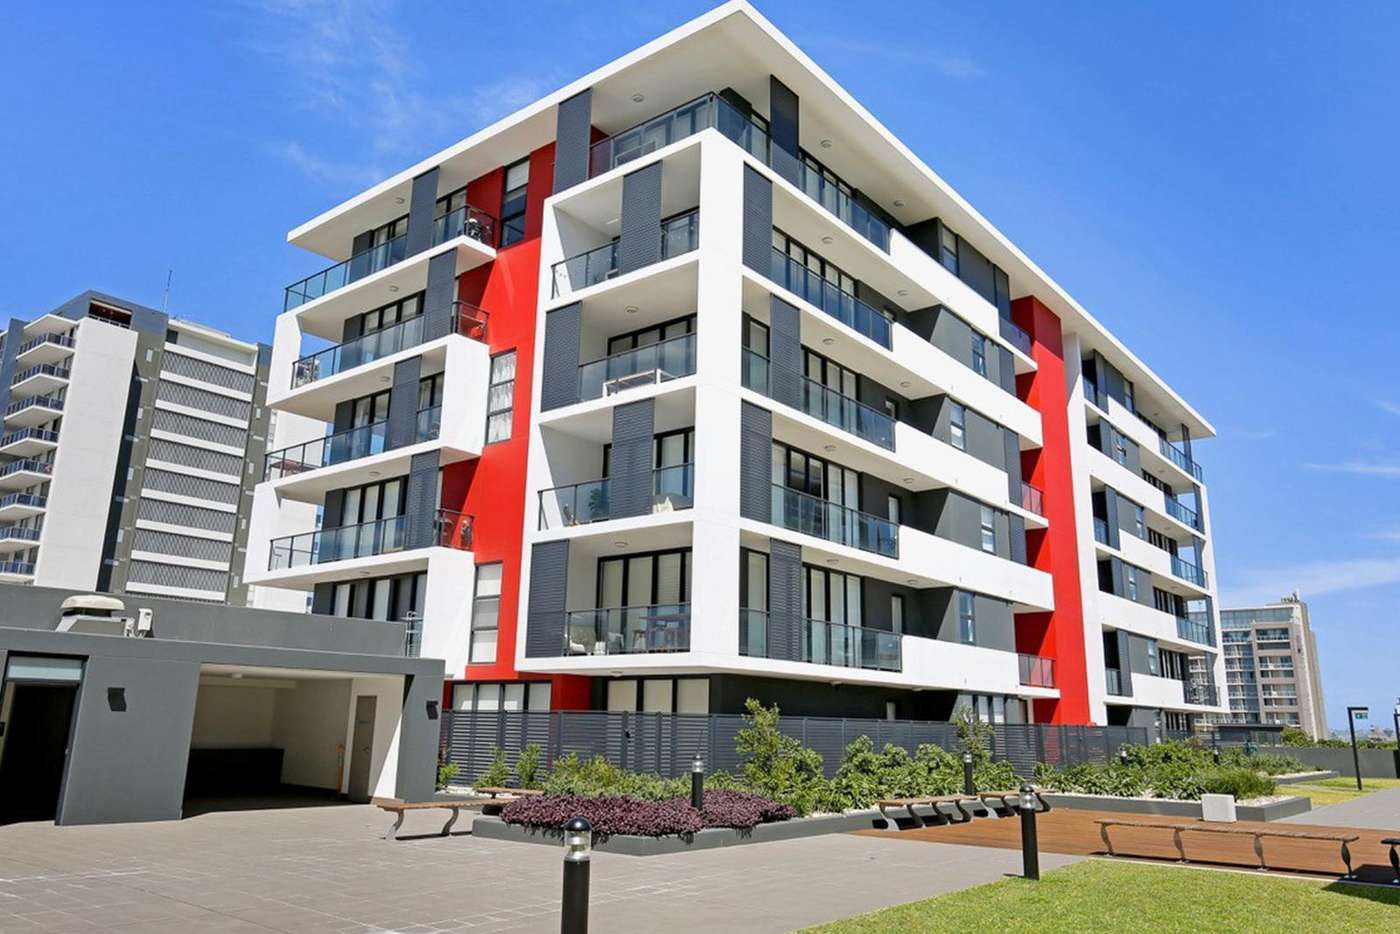 Main view of Homely apartment listing, 603/16 Burelli Street, Wollongong NSW 2500